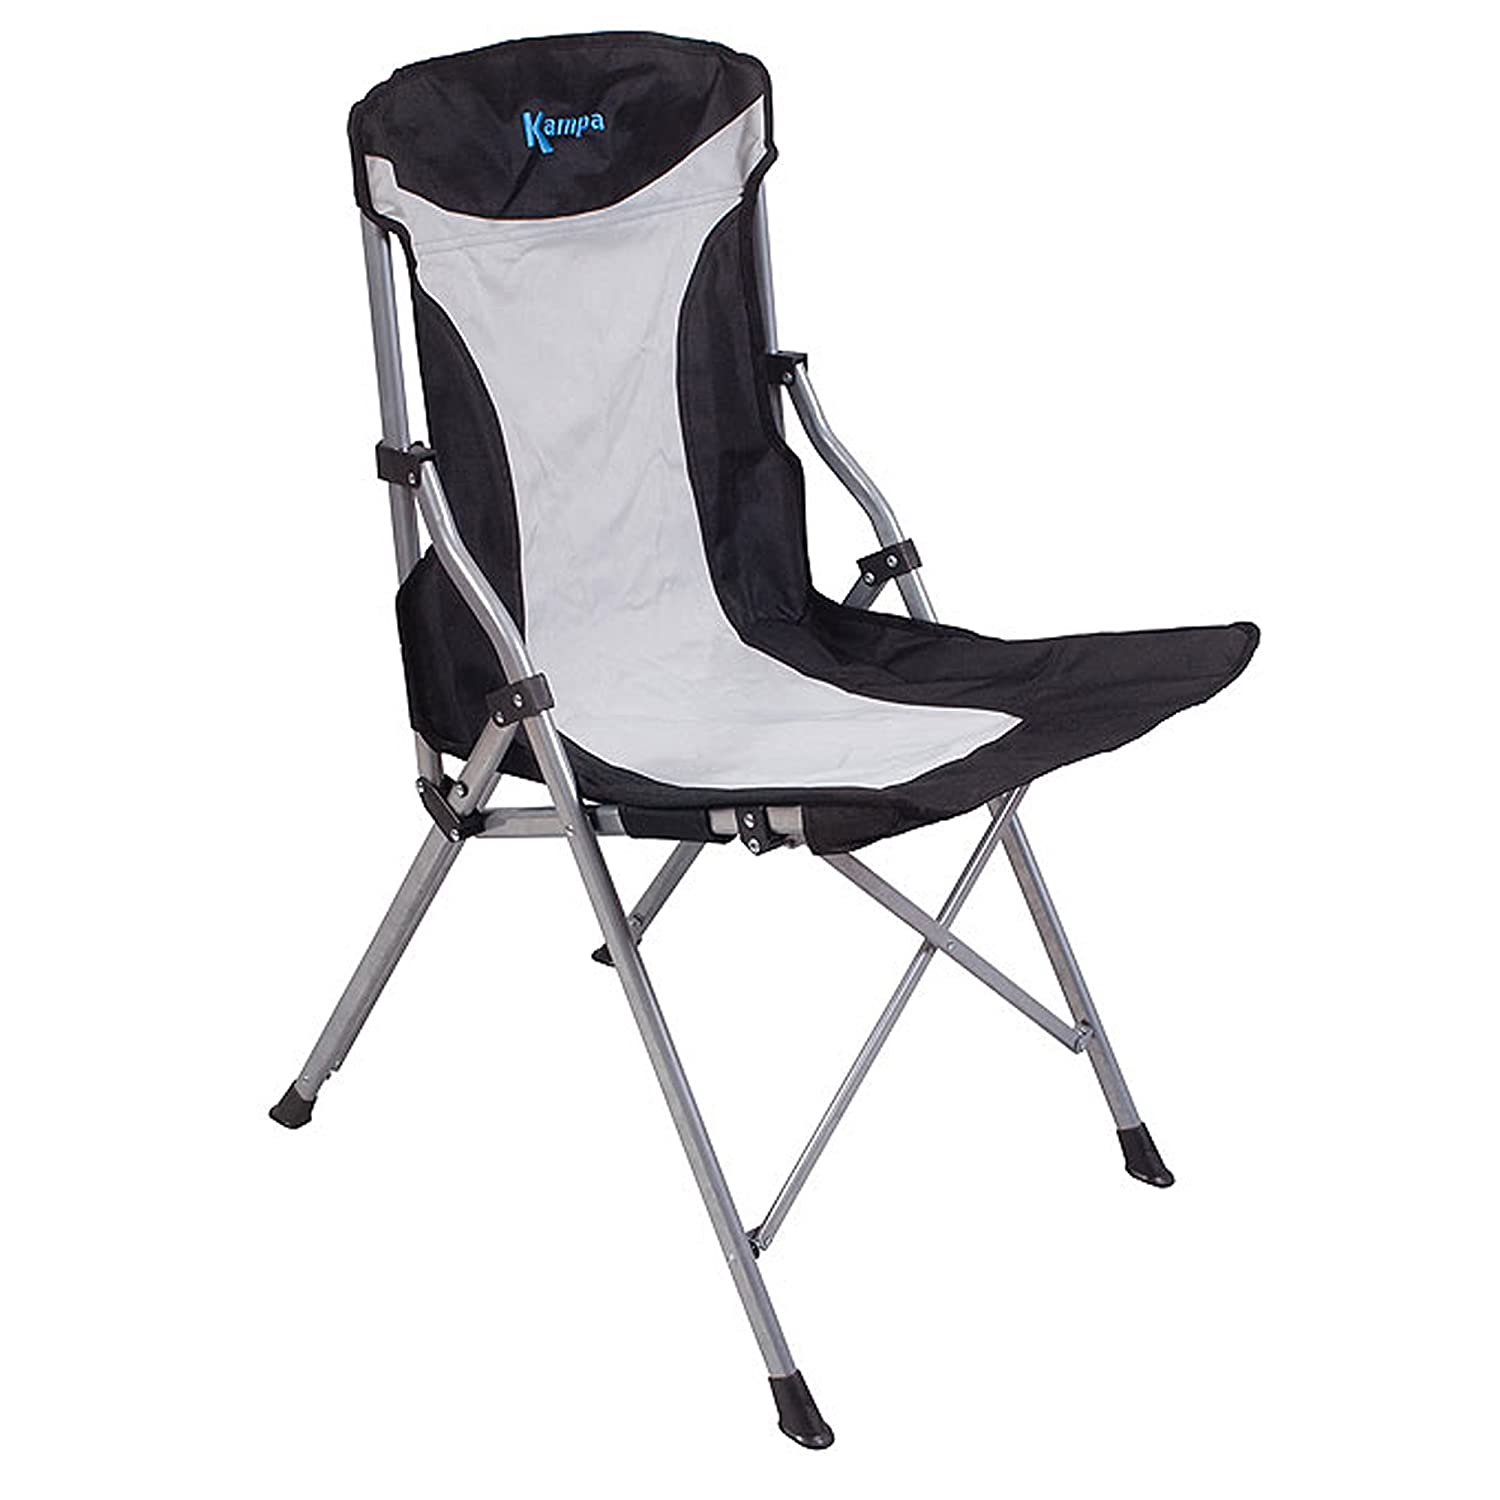 Kampa Bistro Dining Chair for camping Amazon Sports & Outdoors